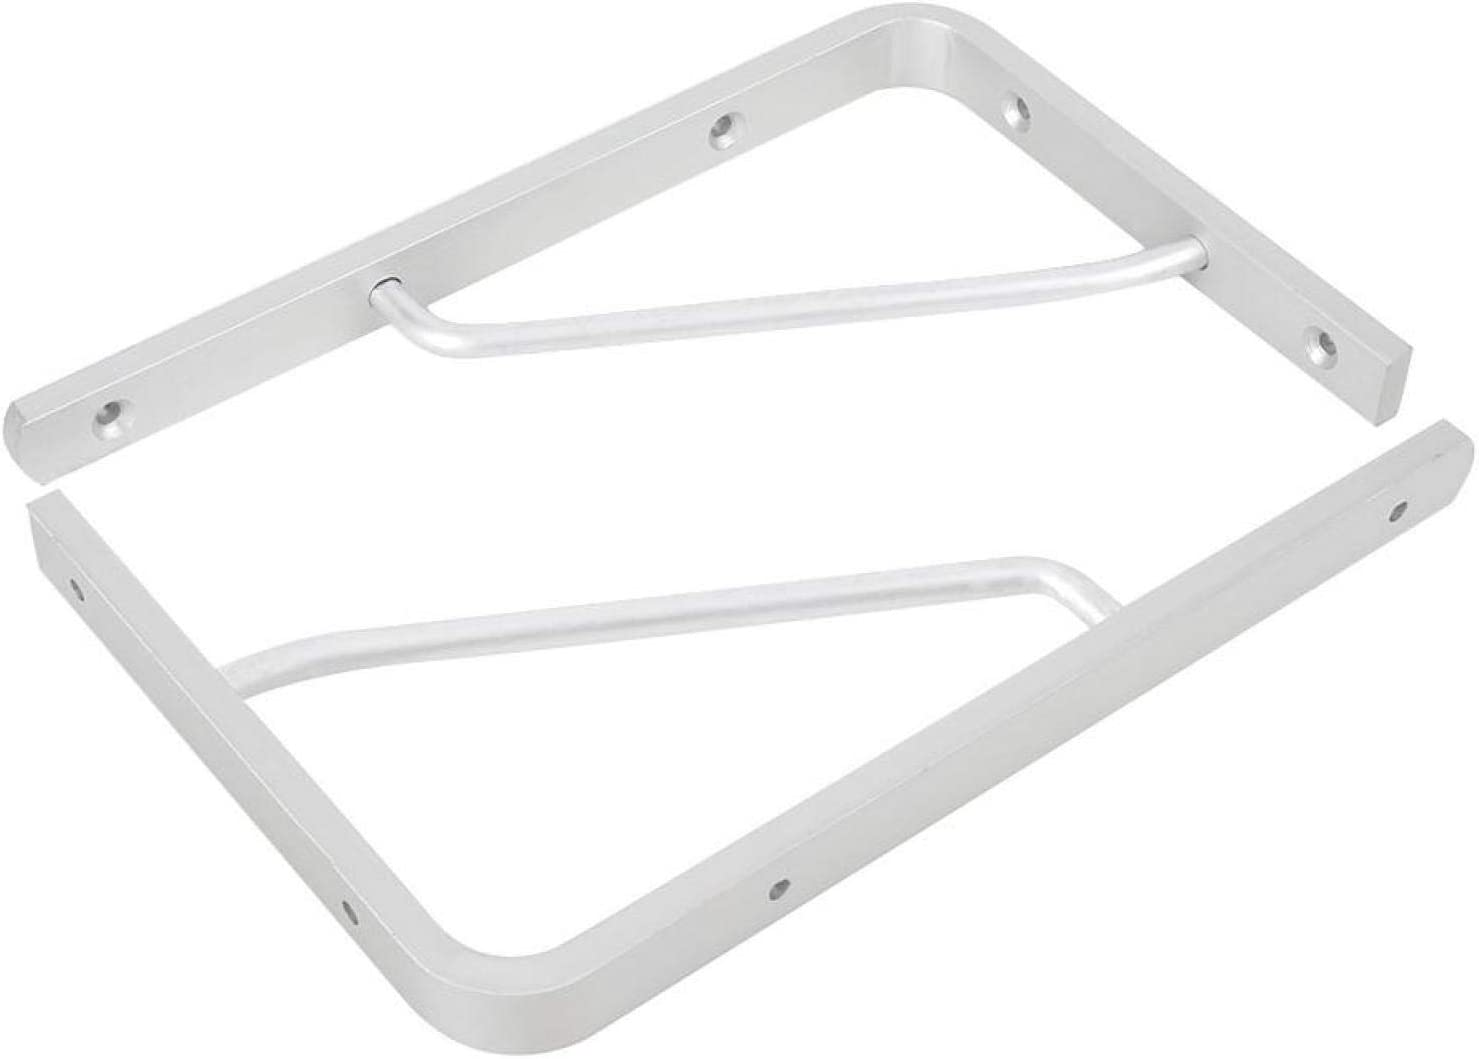 Wear-Resistant and Durable 1 Pair Design Alu Wall Max 85% OFF Rack Cheap mail order specialty store Removable